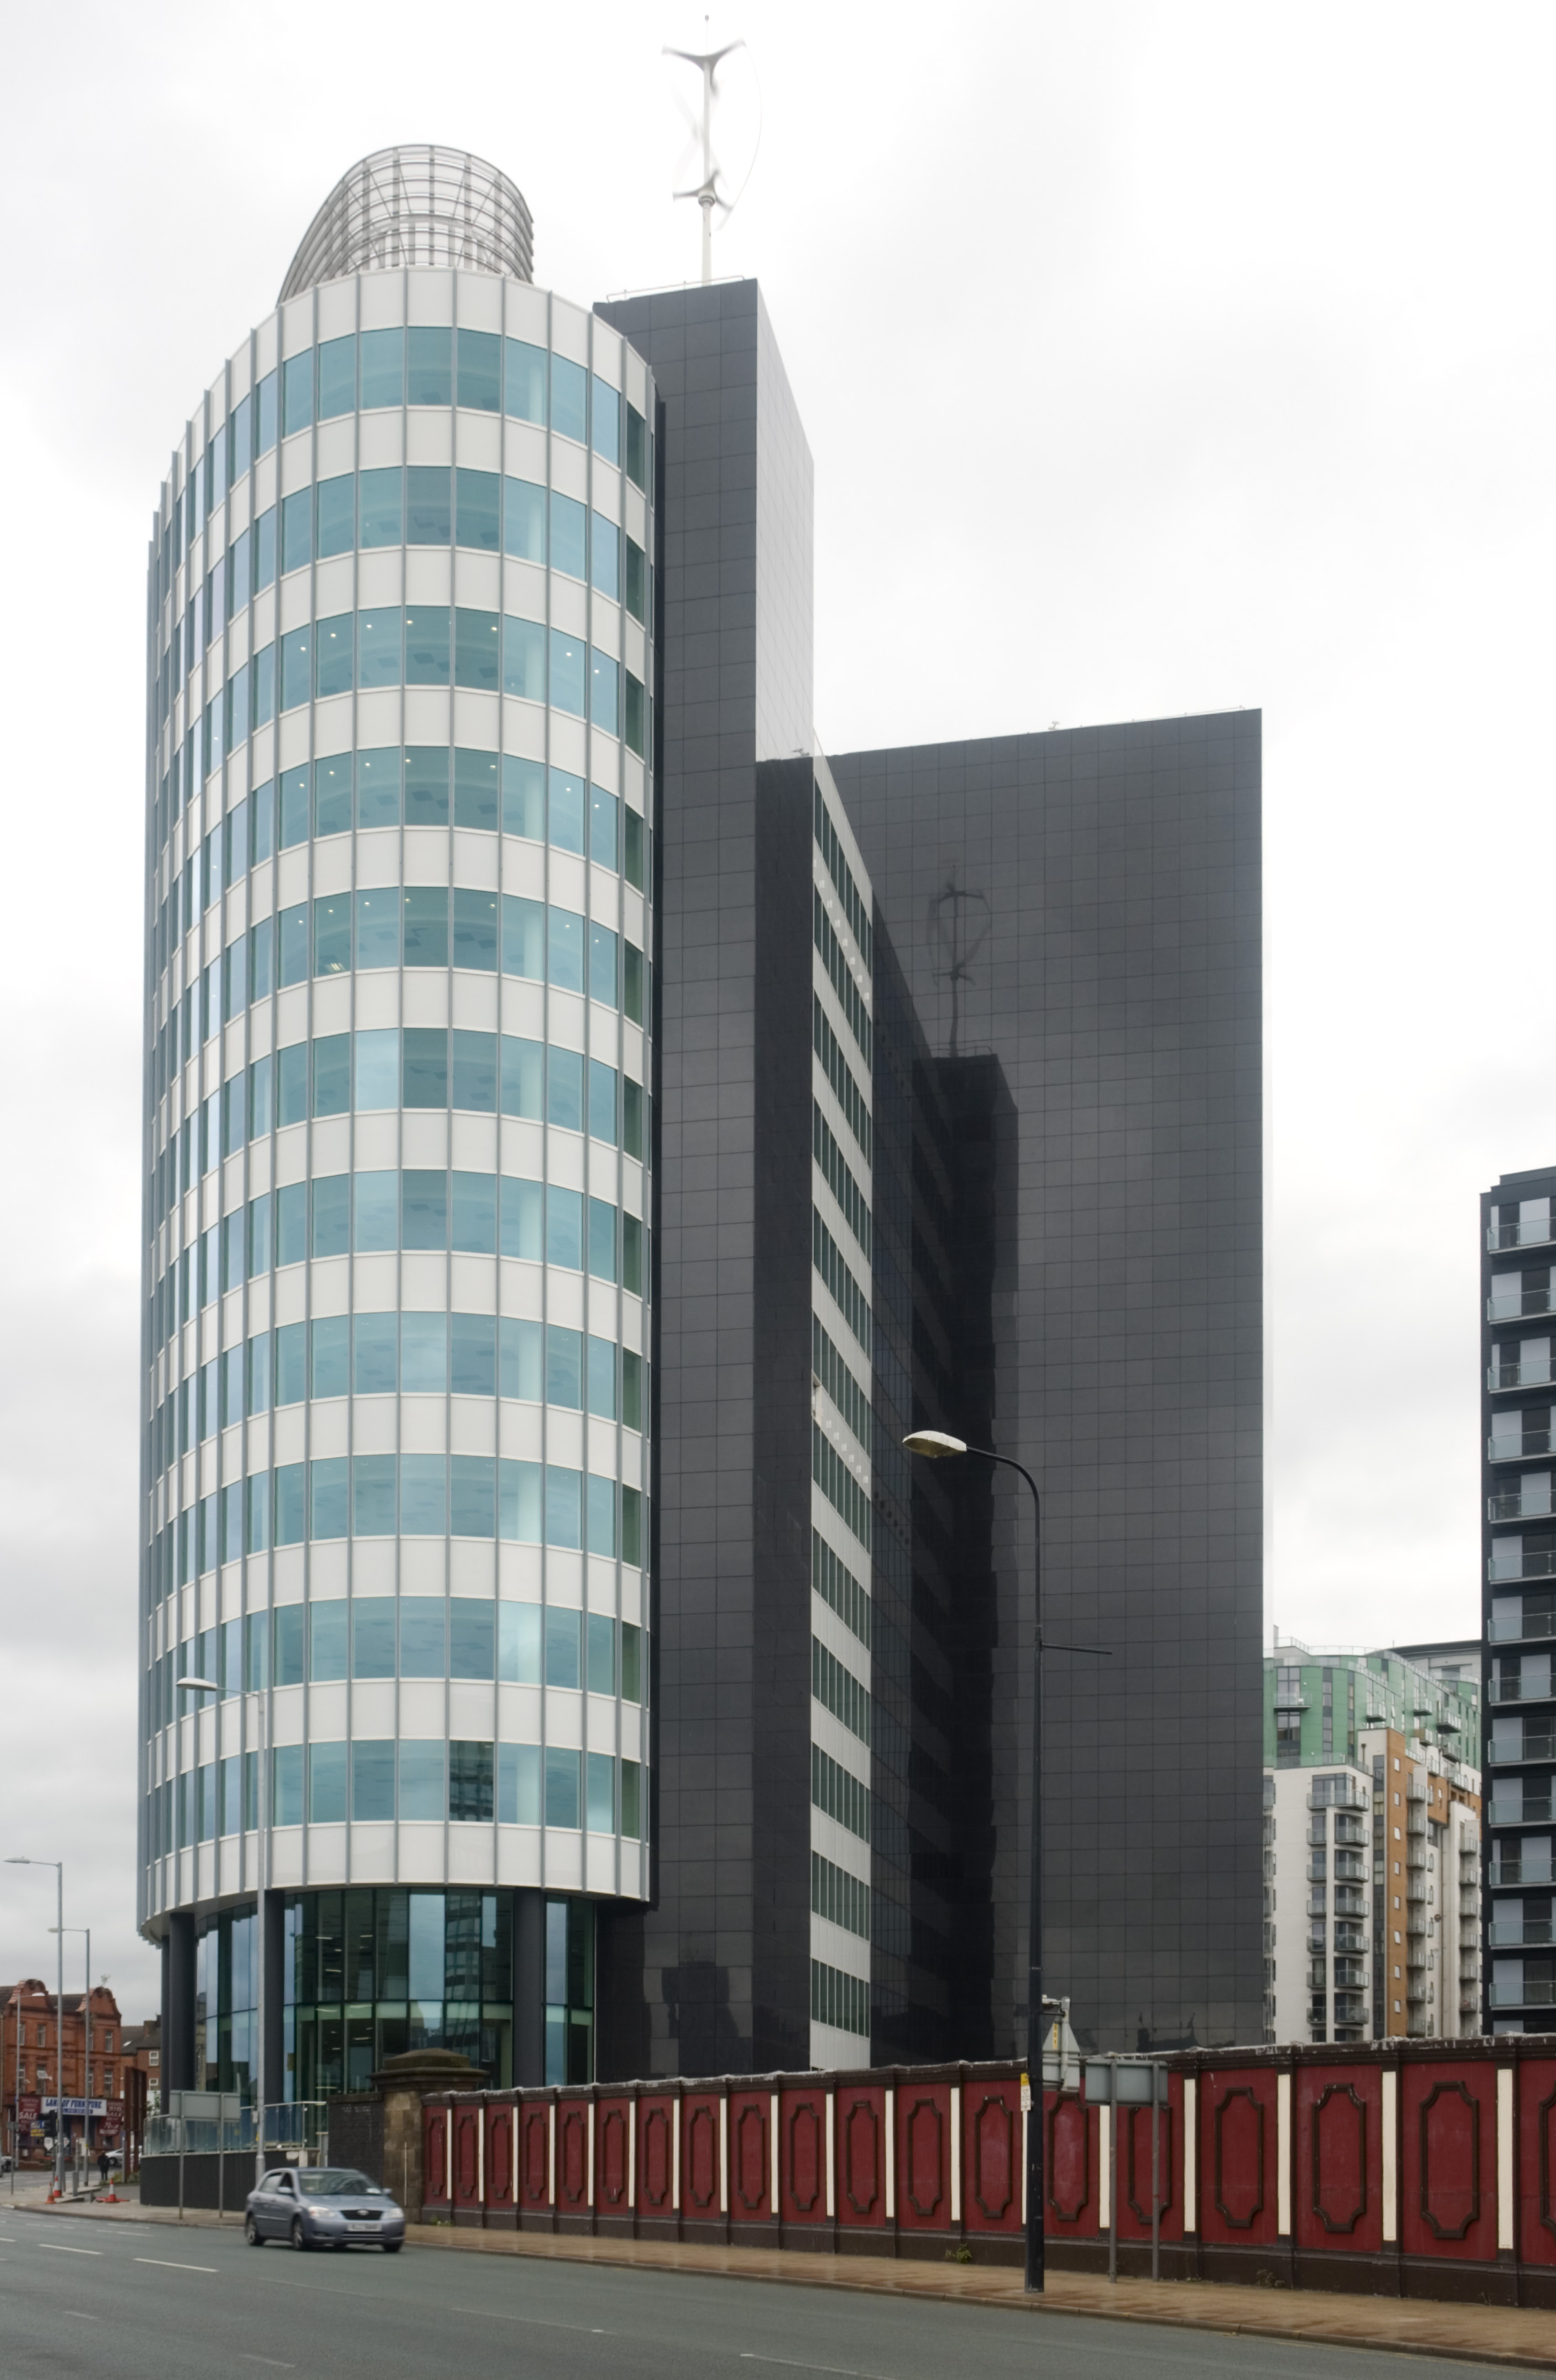 Park Inn Hotel Manchester Keyclad Experts In External